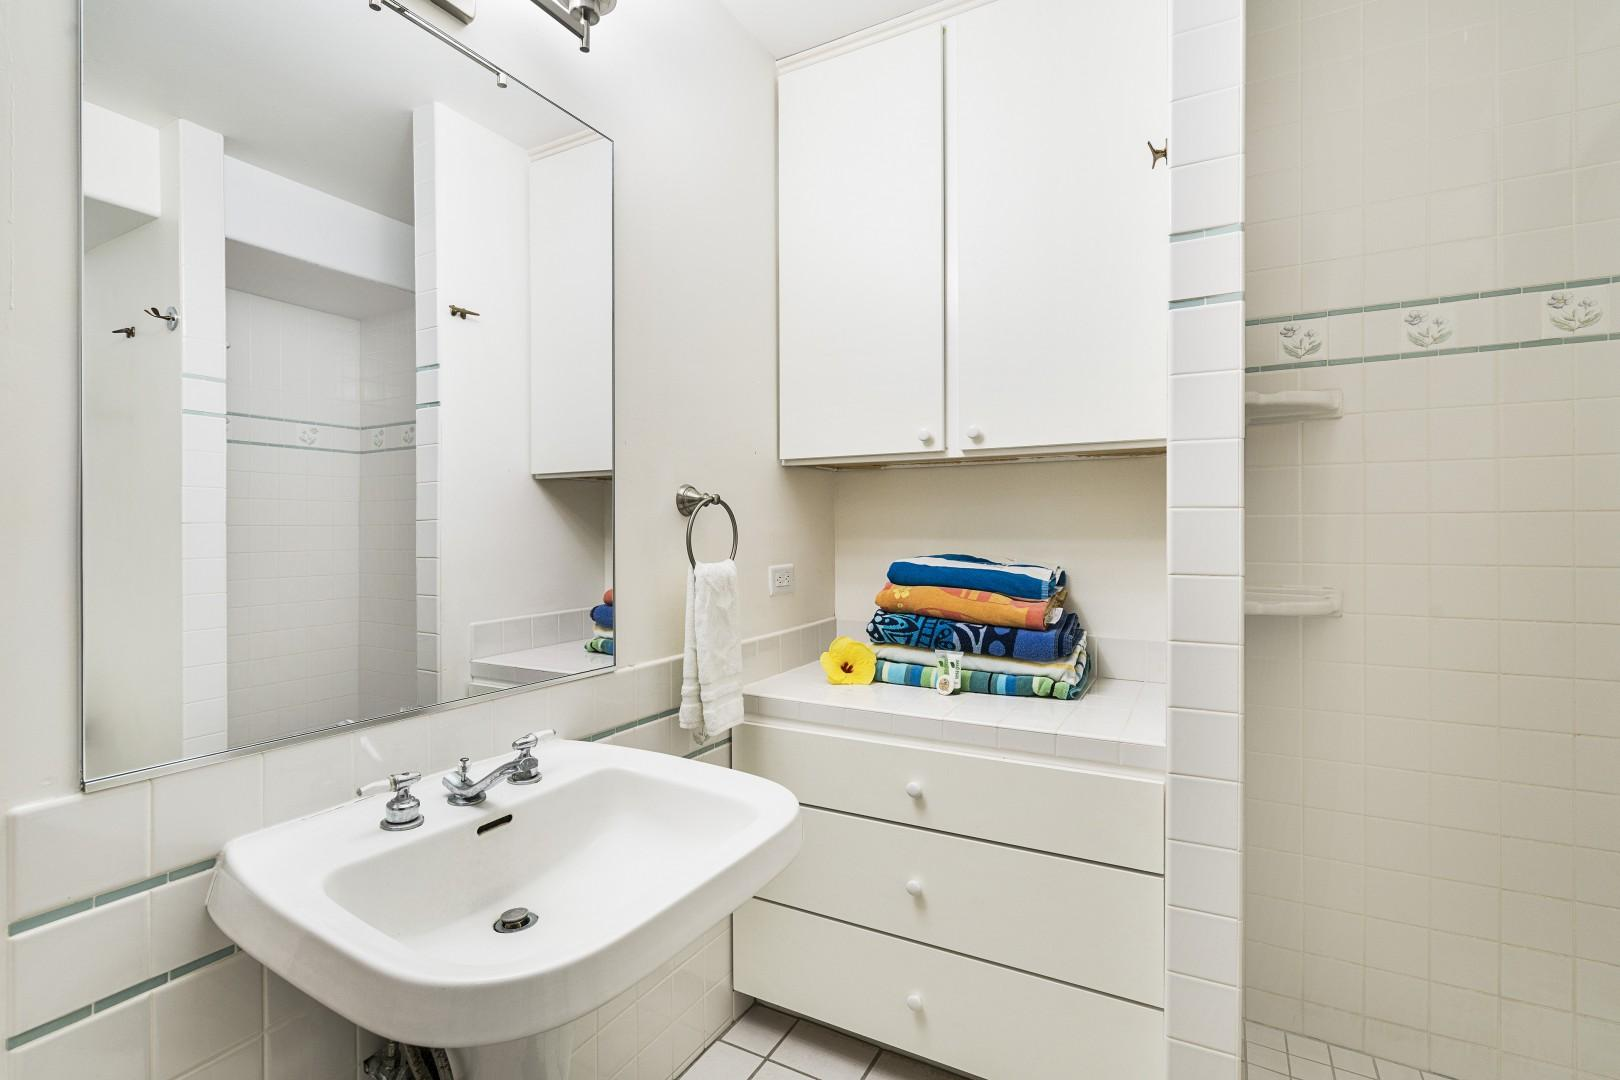 Second bathroom with entry next to the reading nook